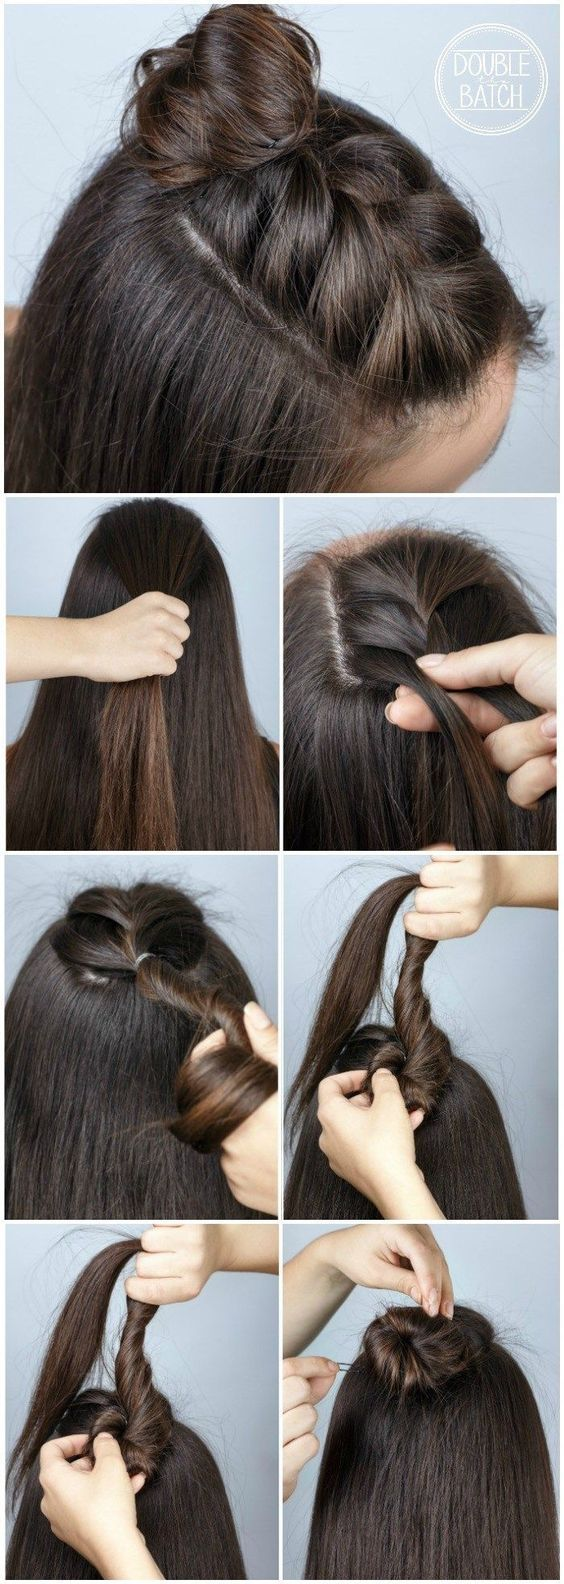 quick and easy backtoschool hairstyle tutorials stay at home